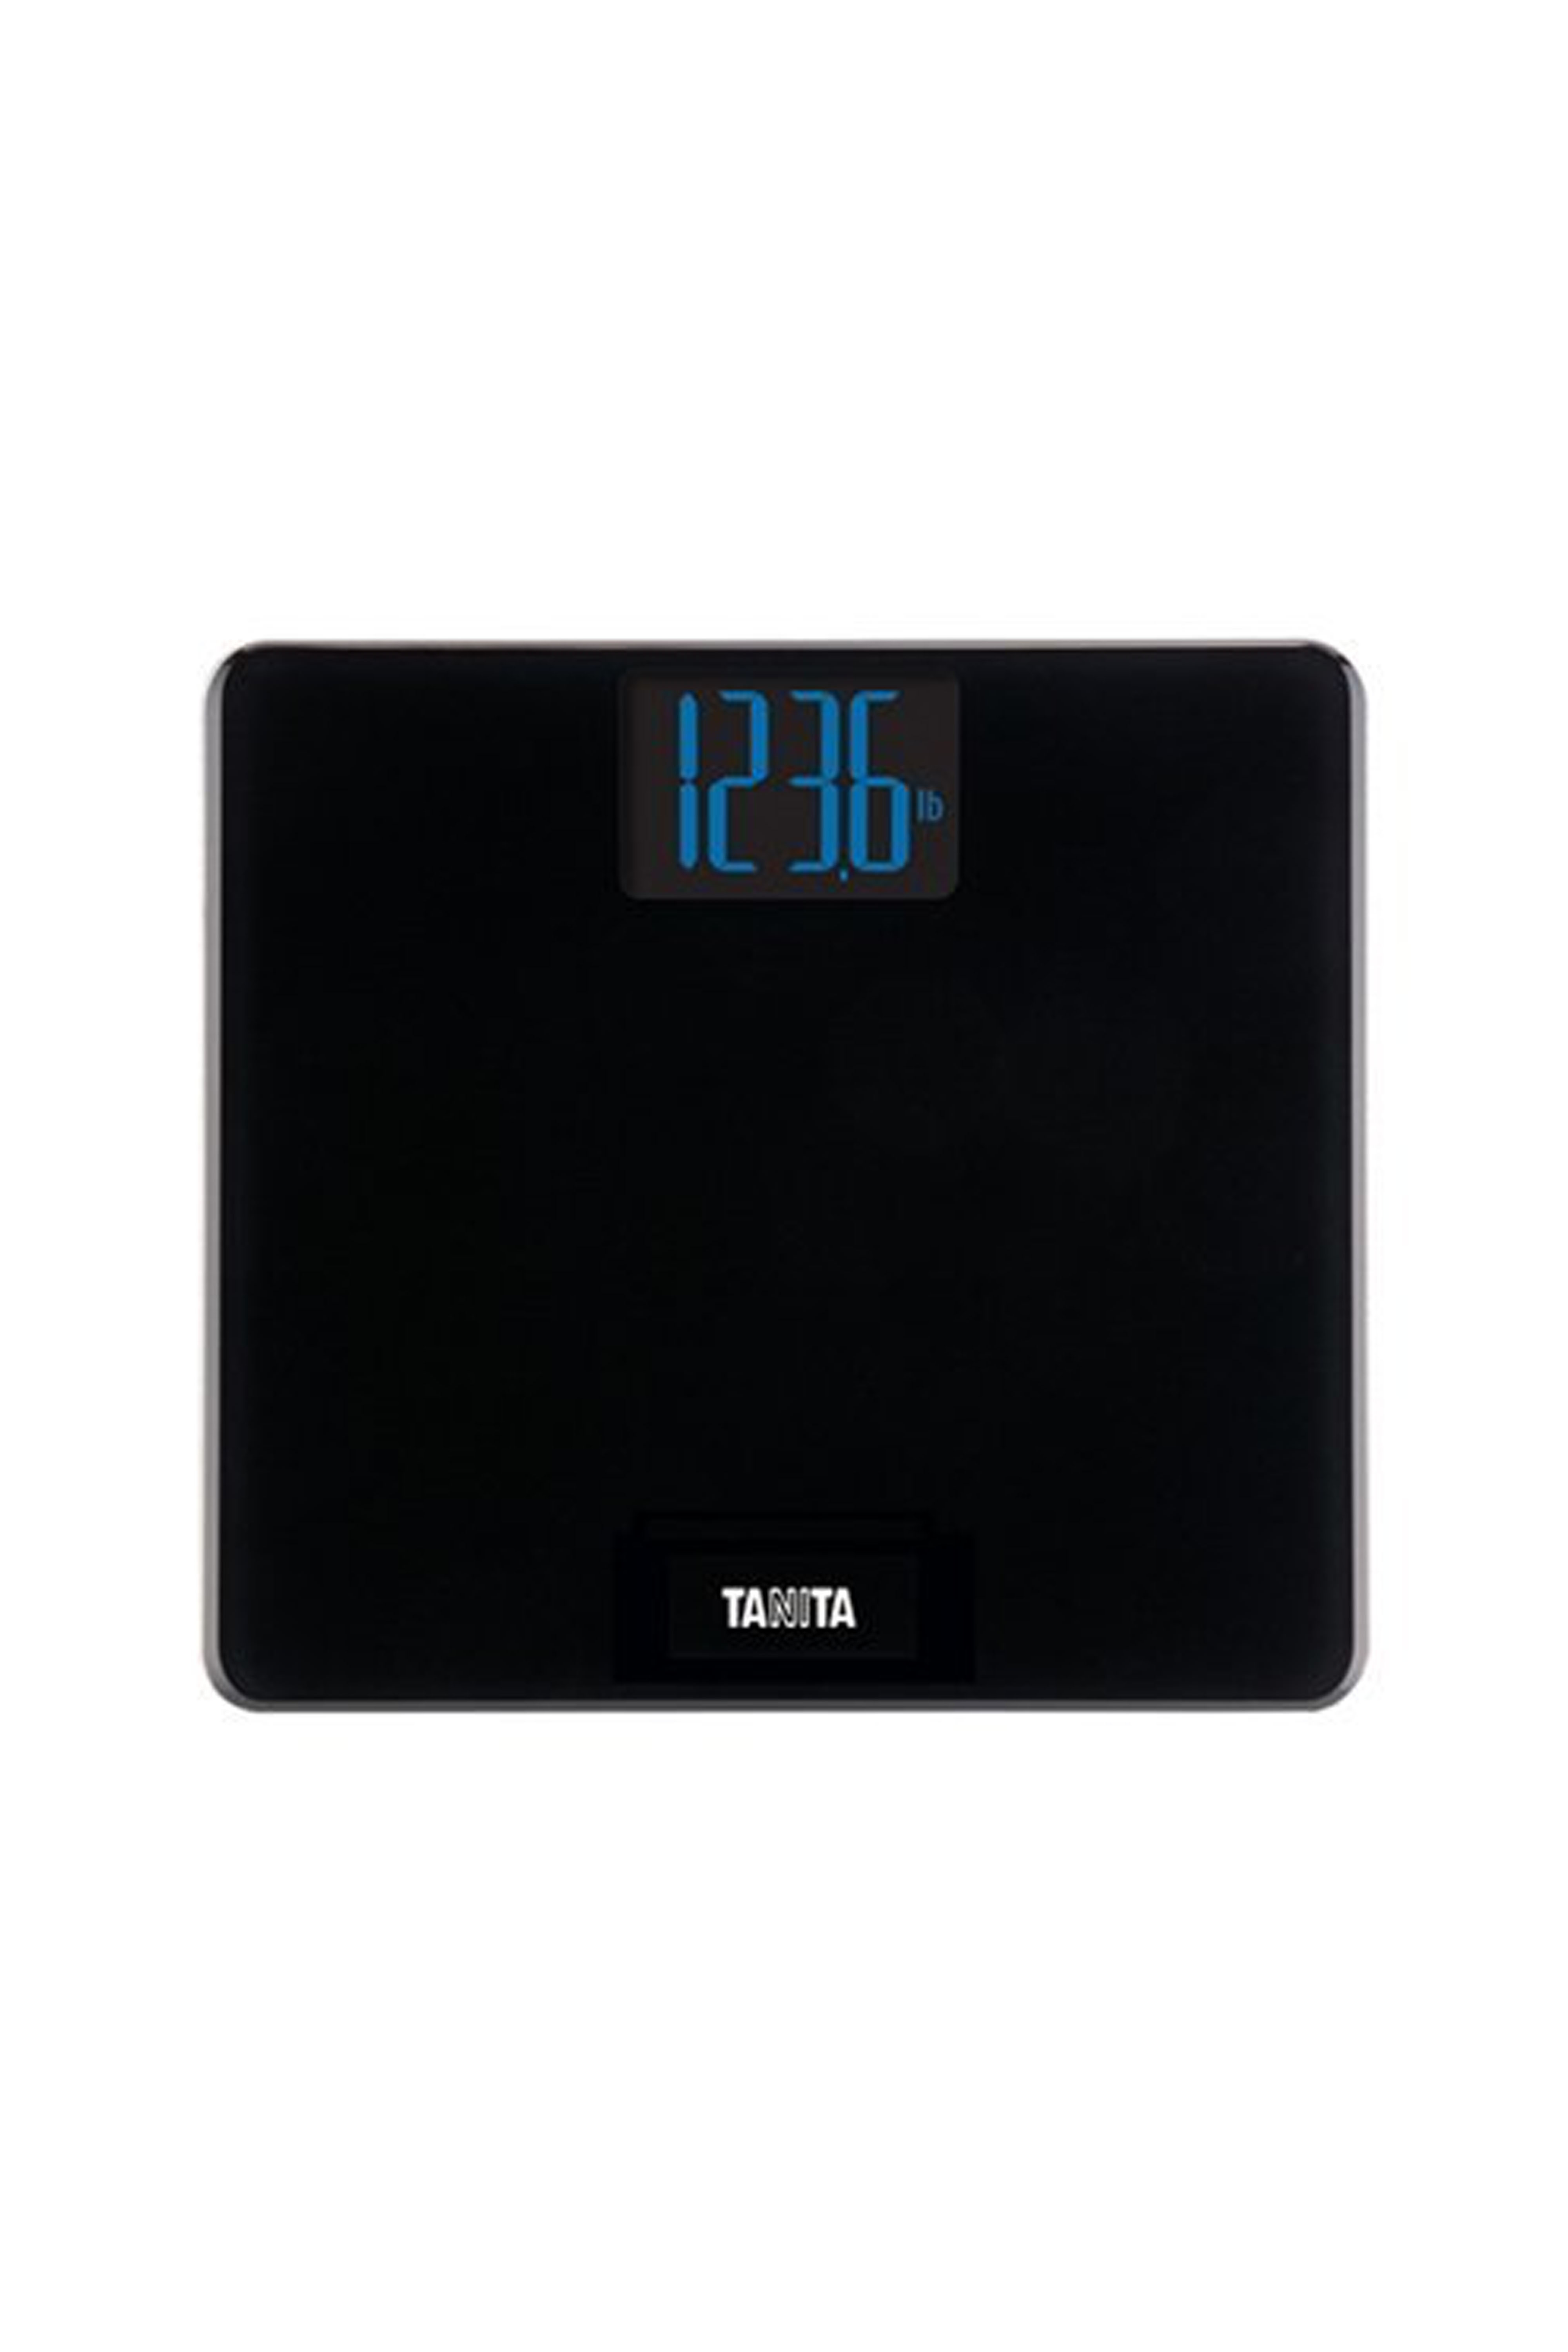 Tanita bathroom scales - Tanita Bathroom Scales 10